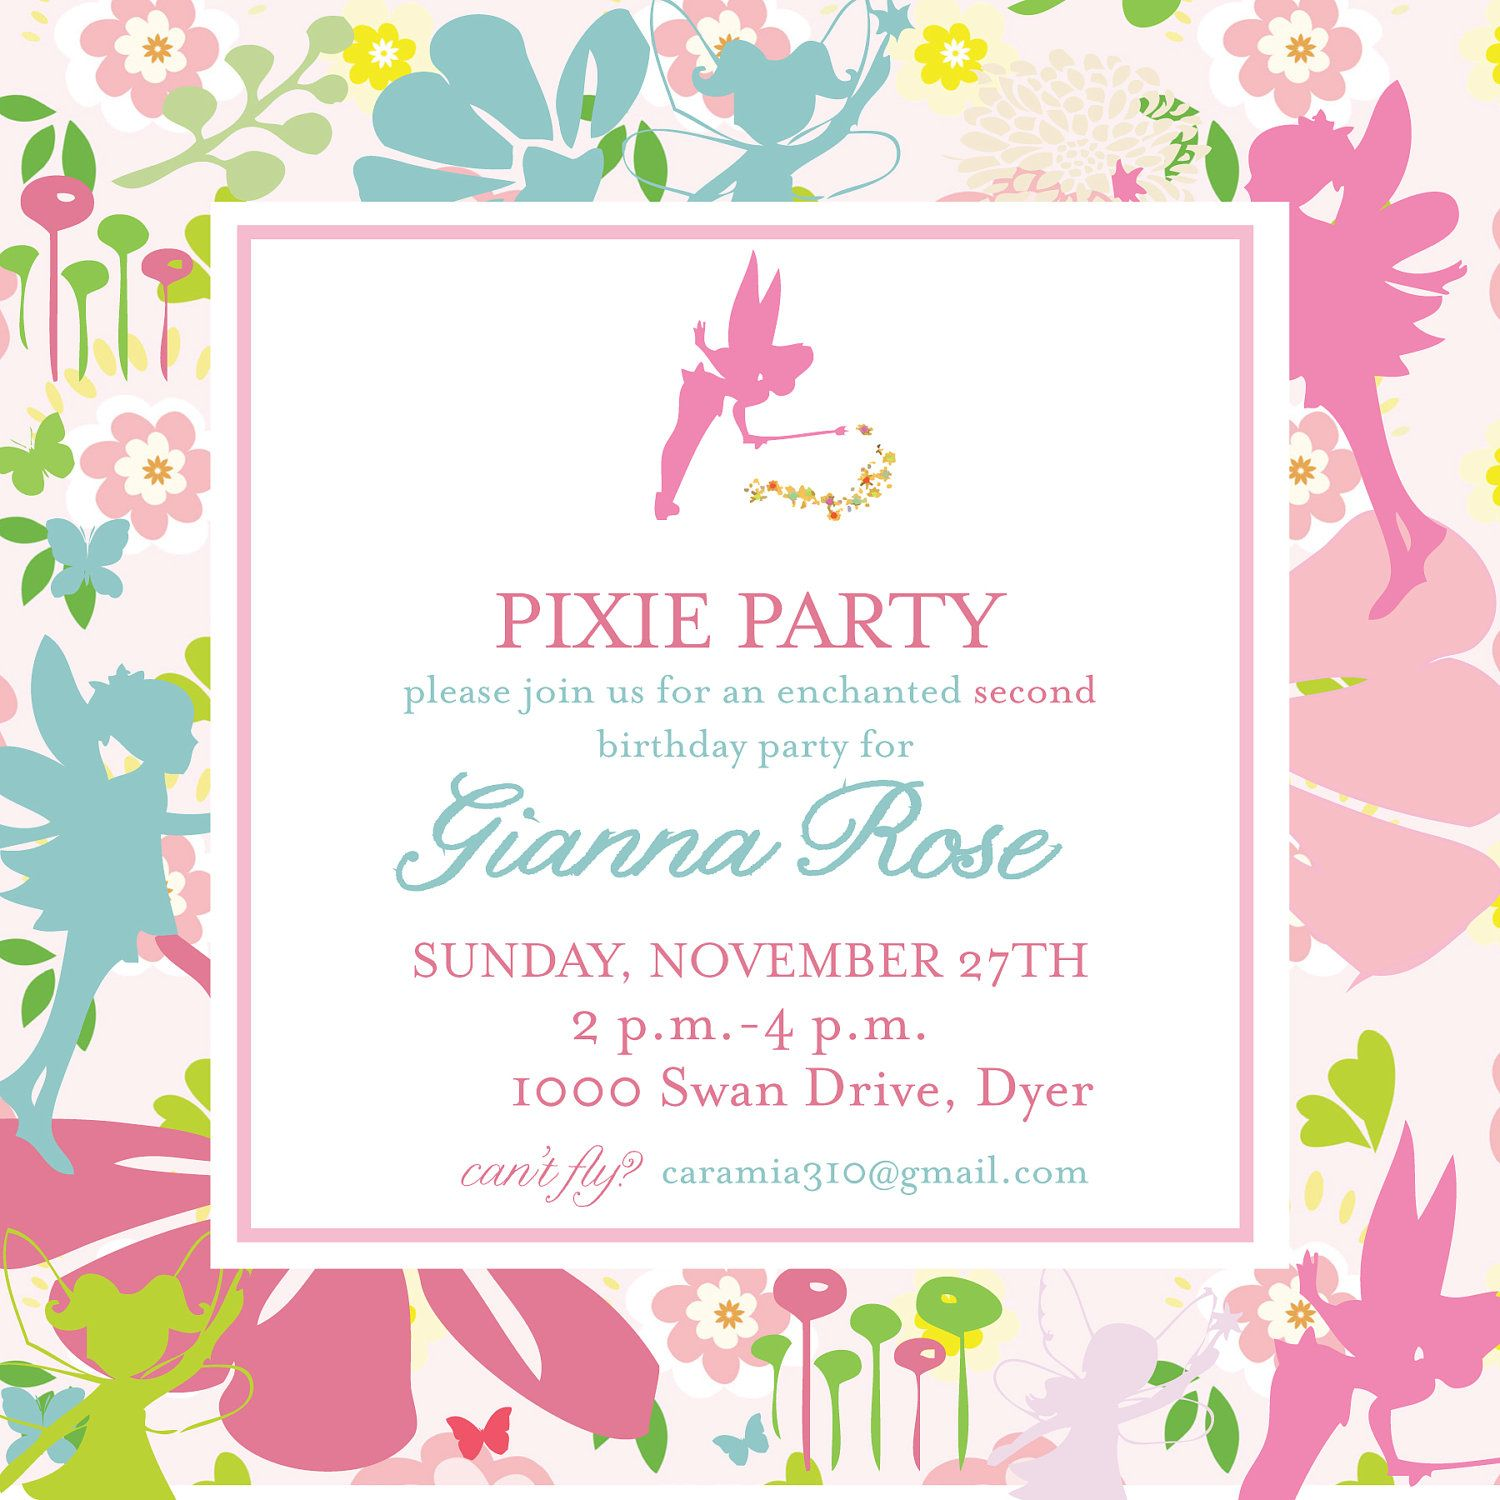 pixies and pirates invitation- tinkerbell | tinkerbell, pirates, Party invitations